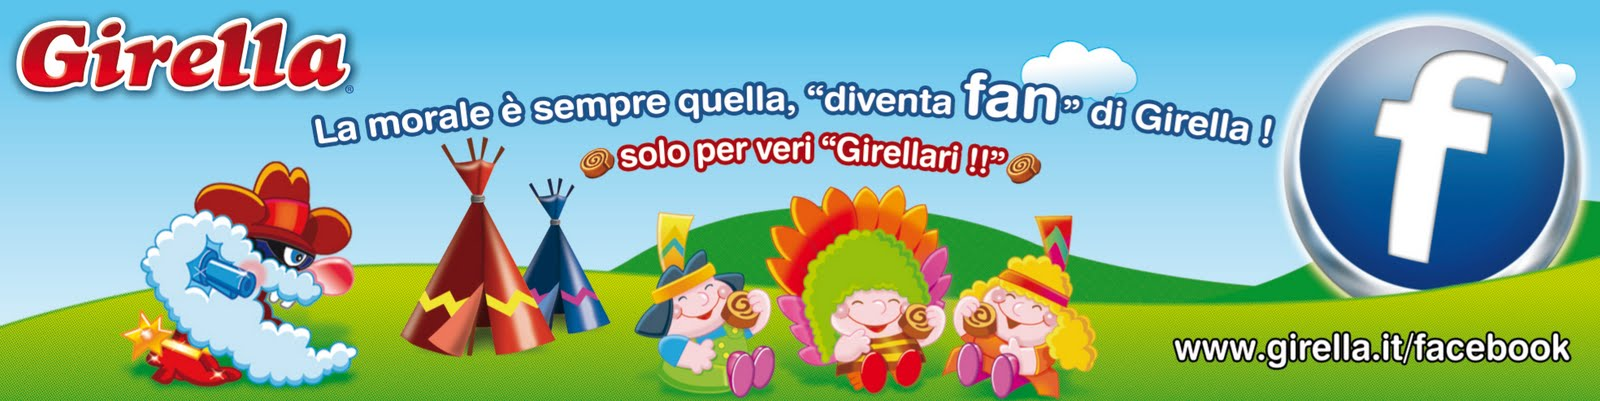 girella